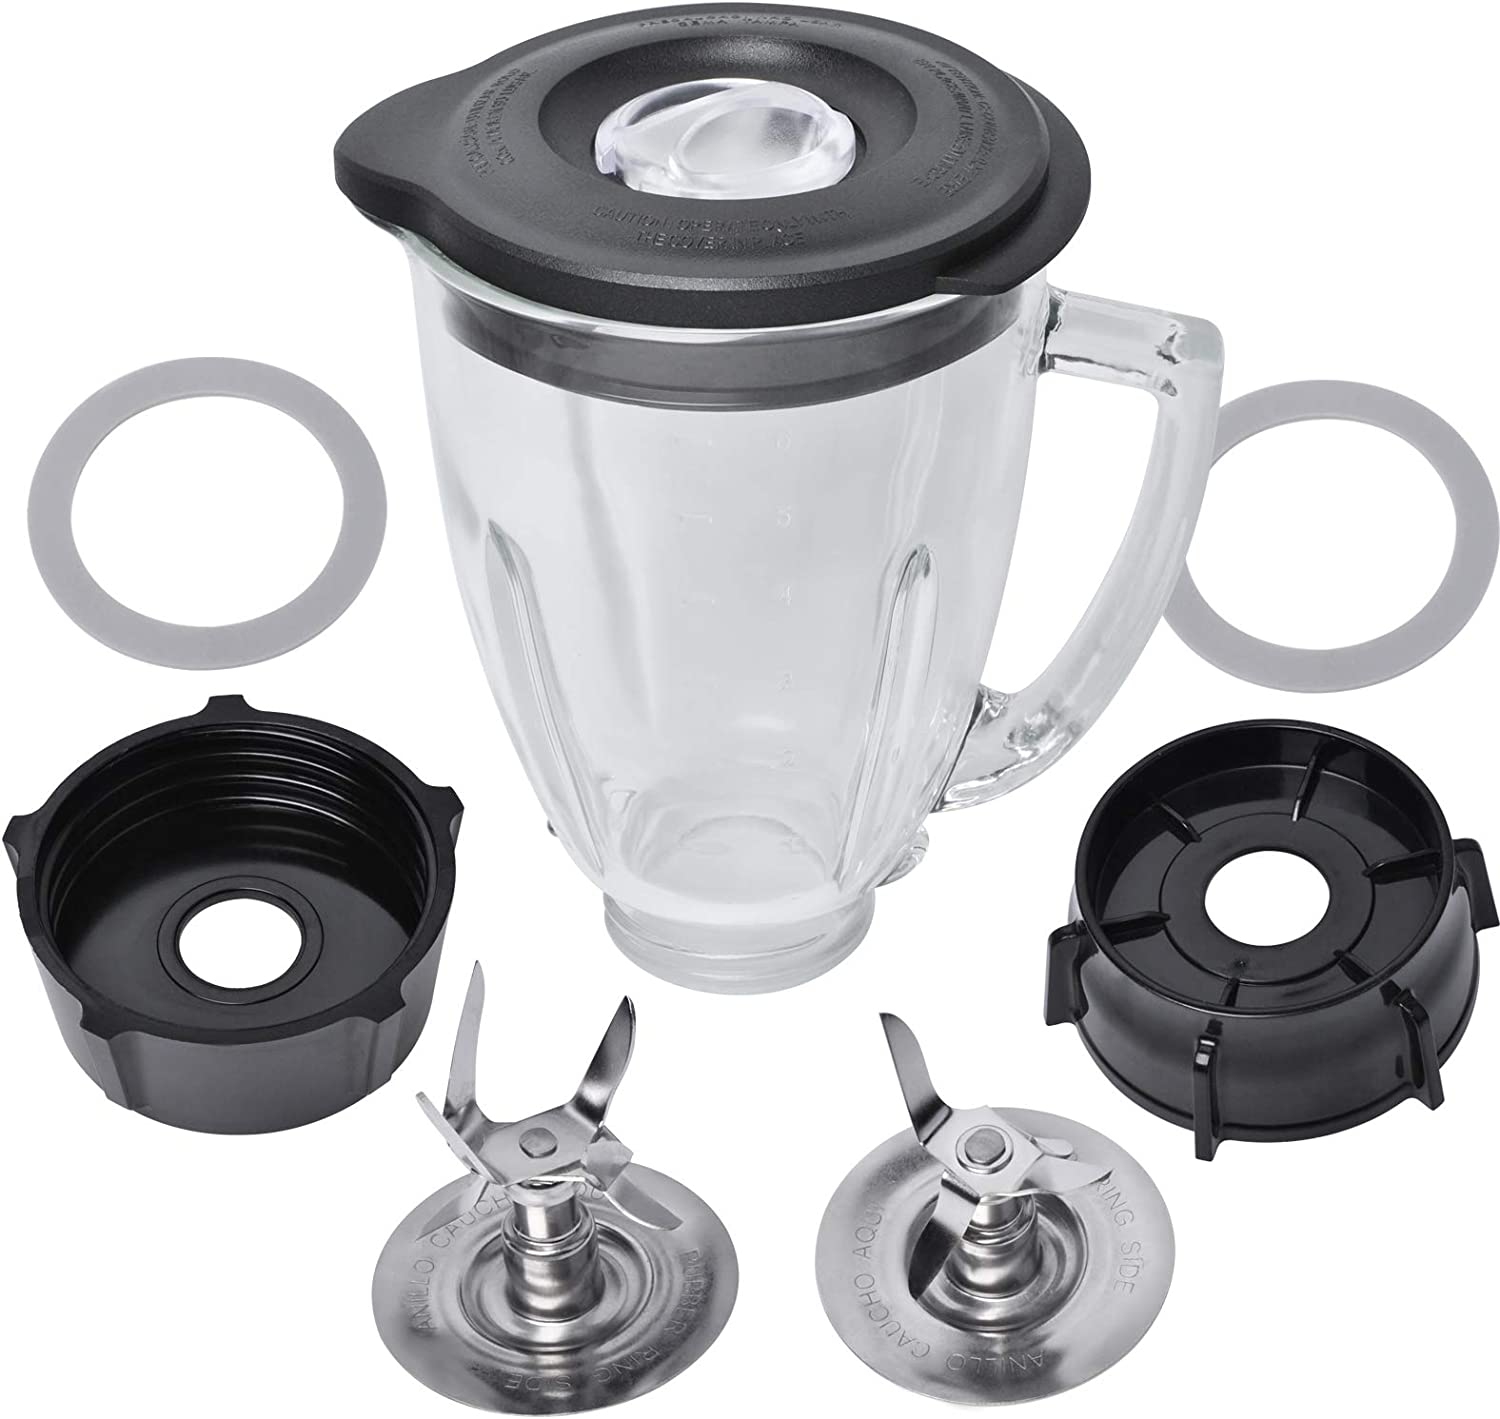 Replacement Parts Compatible with Oster Blender, 6 Cup Glass Blender Replacement Jar with Lid, 4961 4-Point Ice Blade, 4902 Bottom Cap and Rubber Gasket Kit for Oster & Osterizer Blenders Accessories